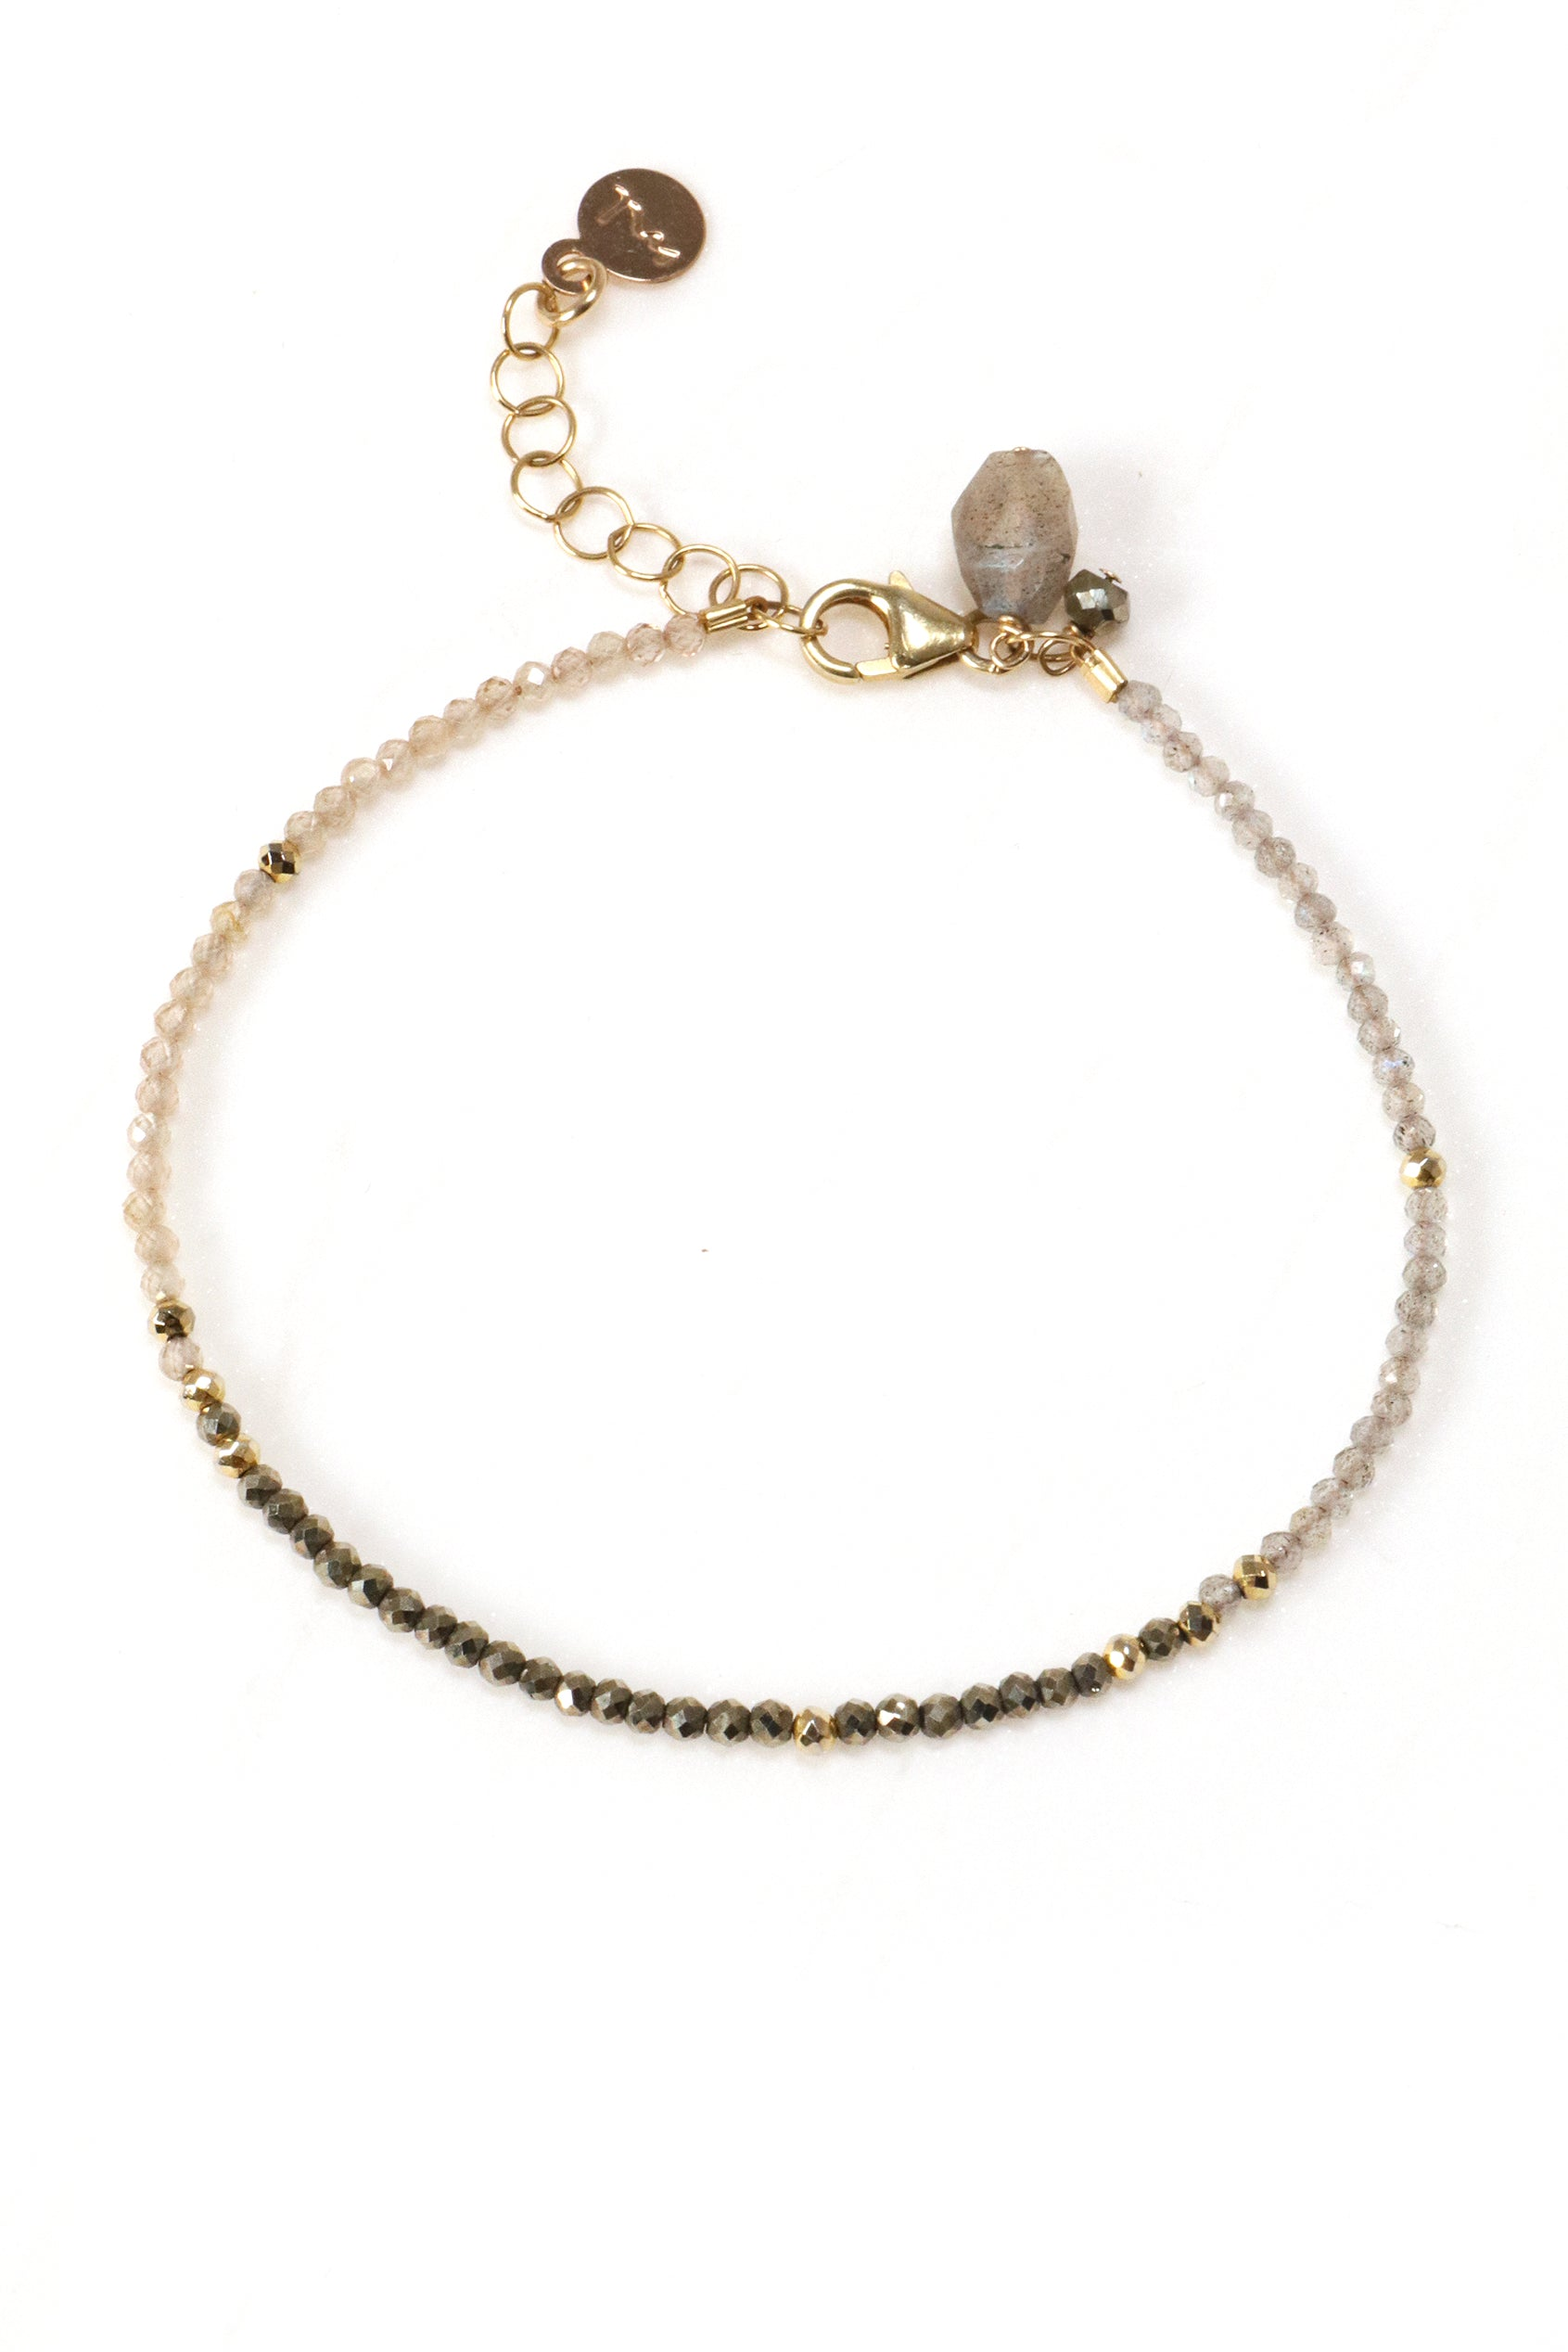 Labradorite, Pyrite and Zircon Bracelet